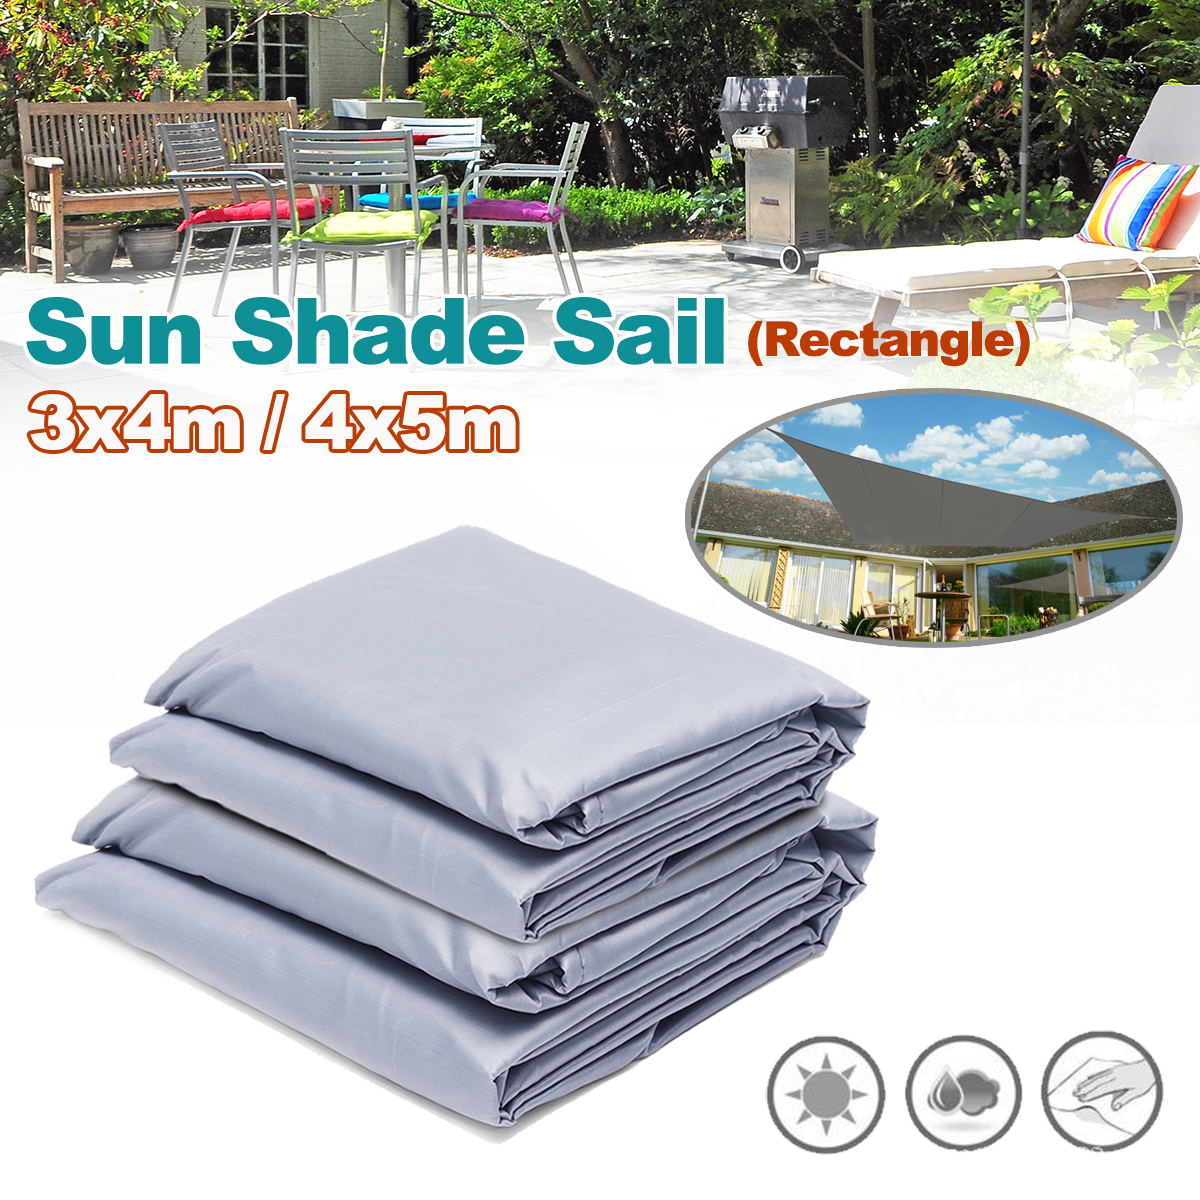 3x4m/4x5m Rectangle Waterproof Sun Shade Awning Cover Cap Uv-resistant Furniture Rectangle Dust Cover Outdoor Garden Garden Supplies